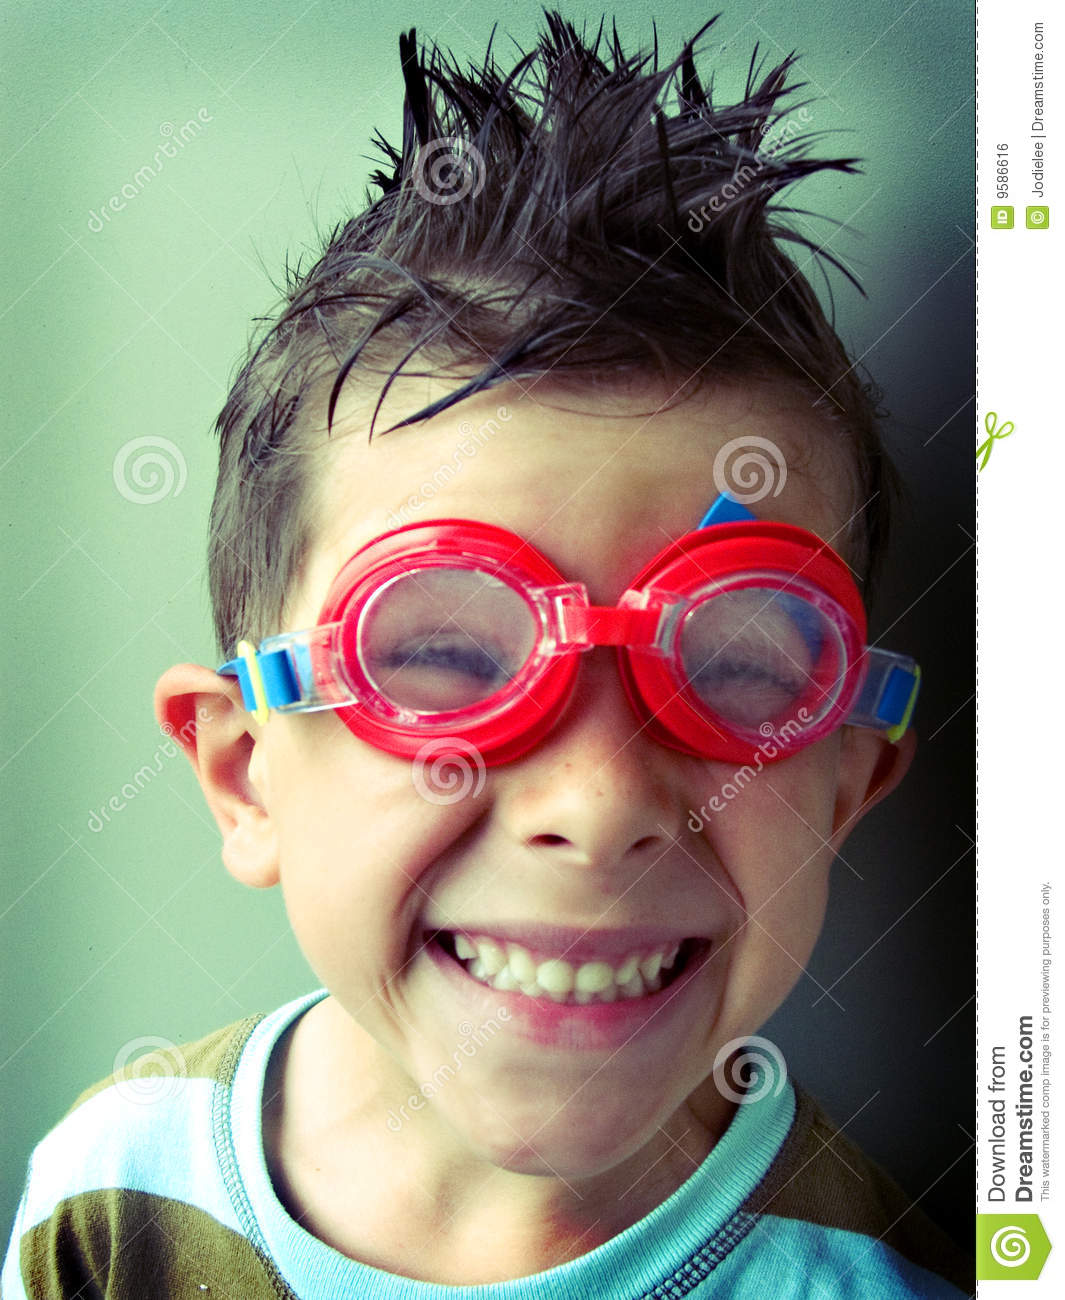 Funny Boy Smiling In Swimming Googles Stock Photo Image